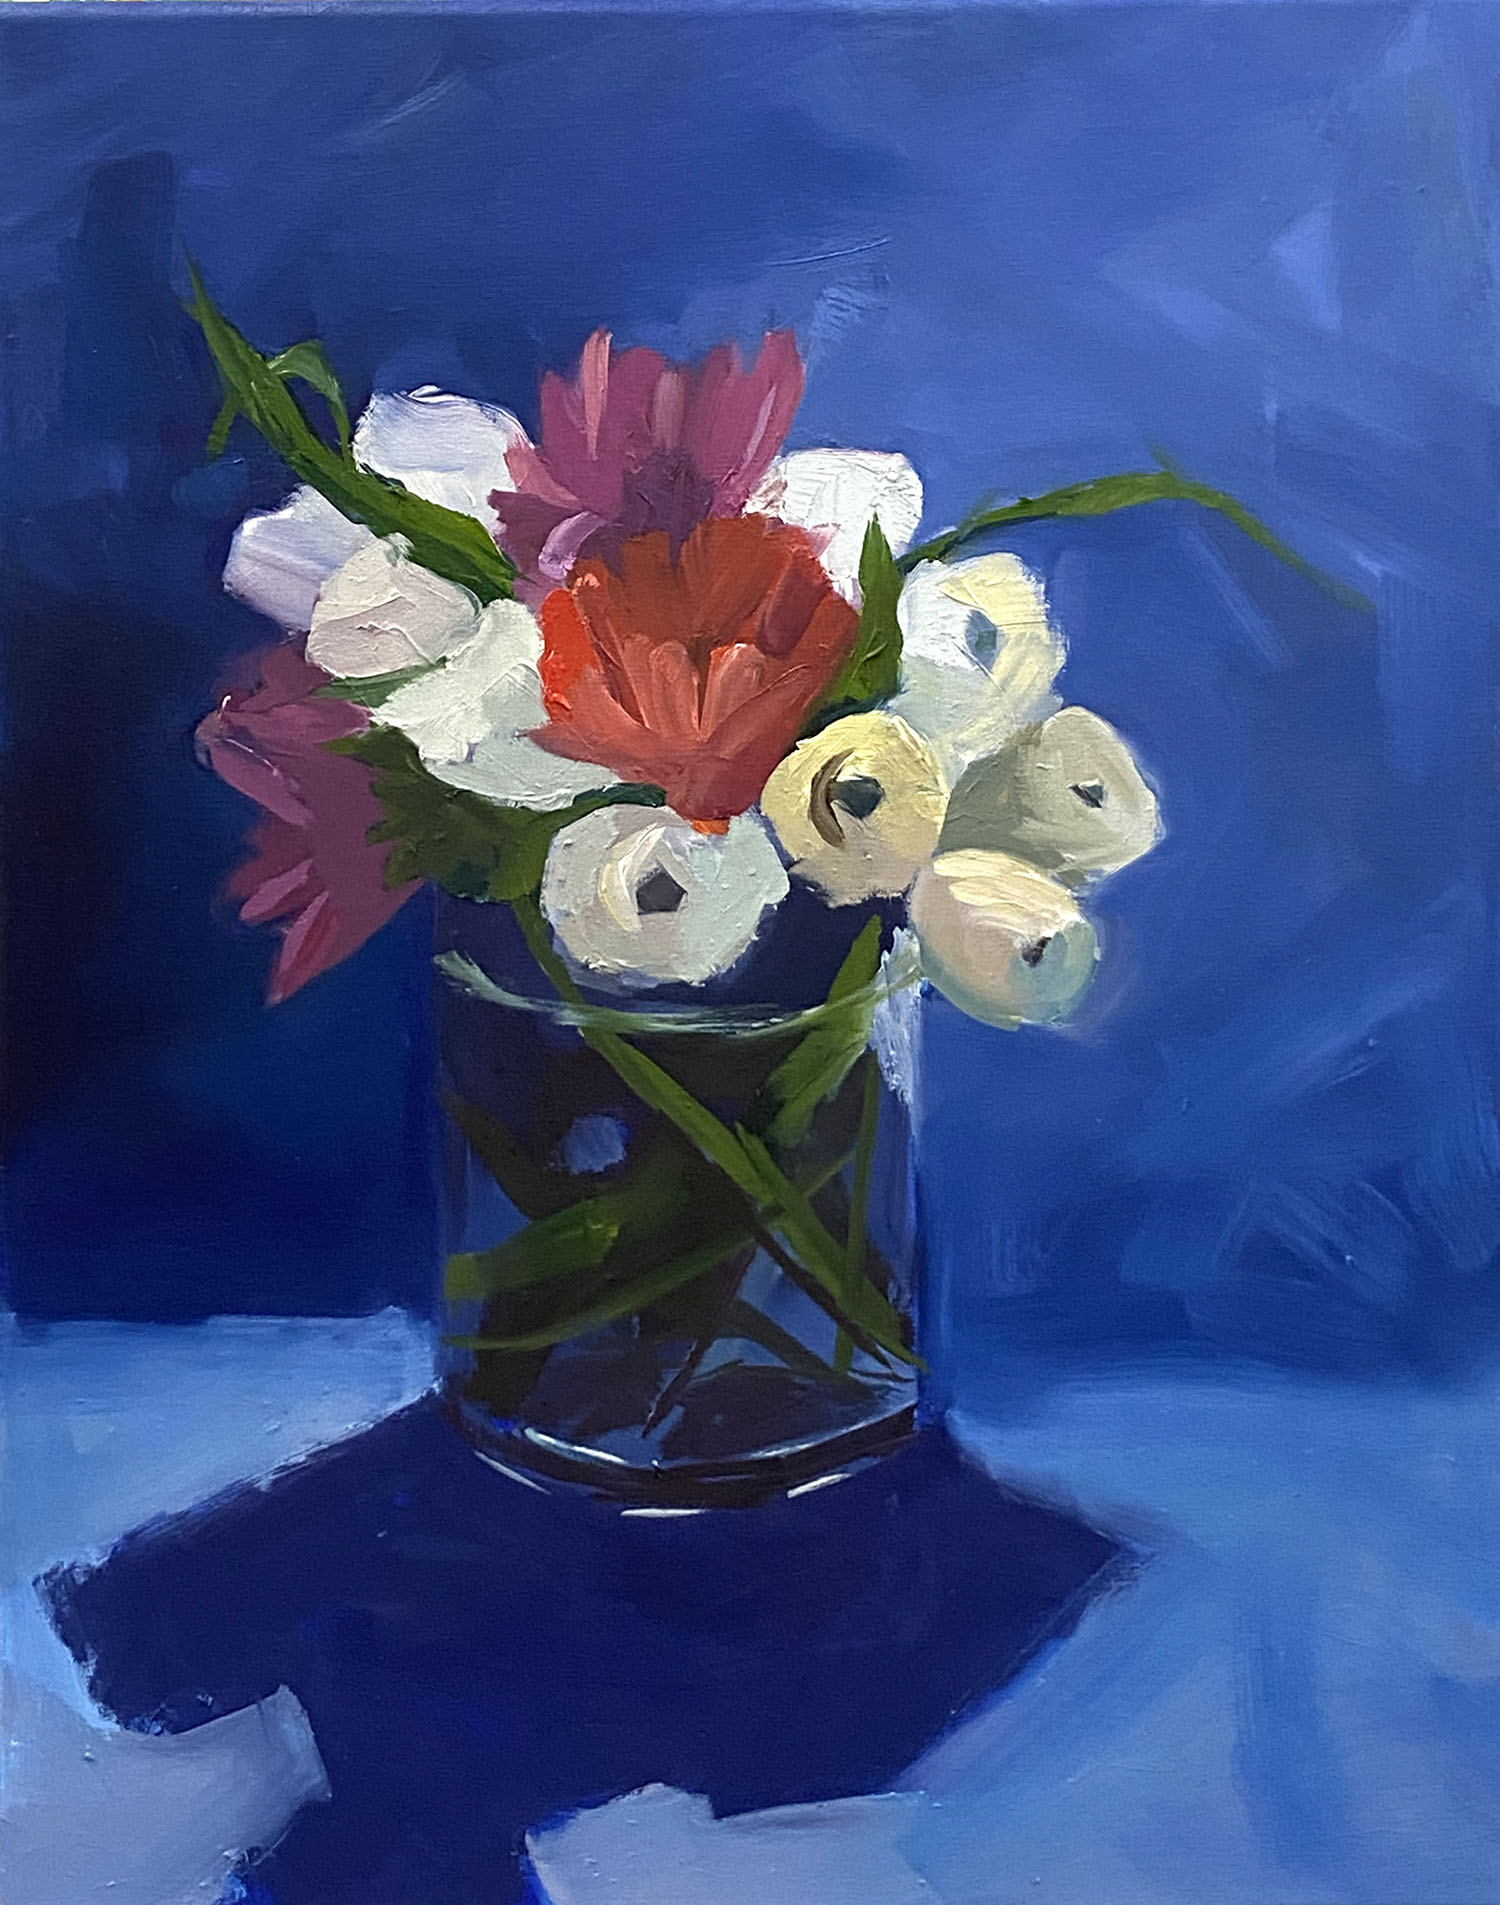 Mimi Jigarjian, Out of the Blue, at Waltham Open Studios 2020